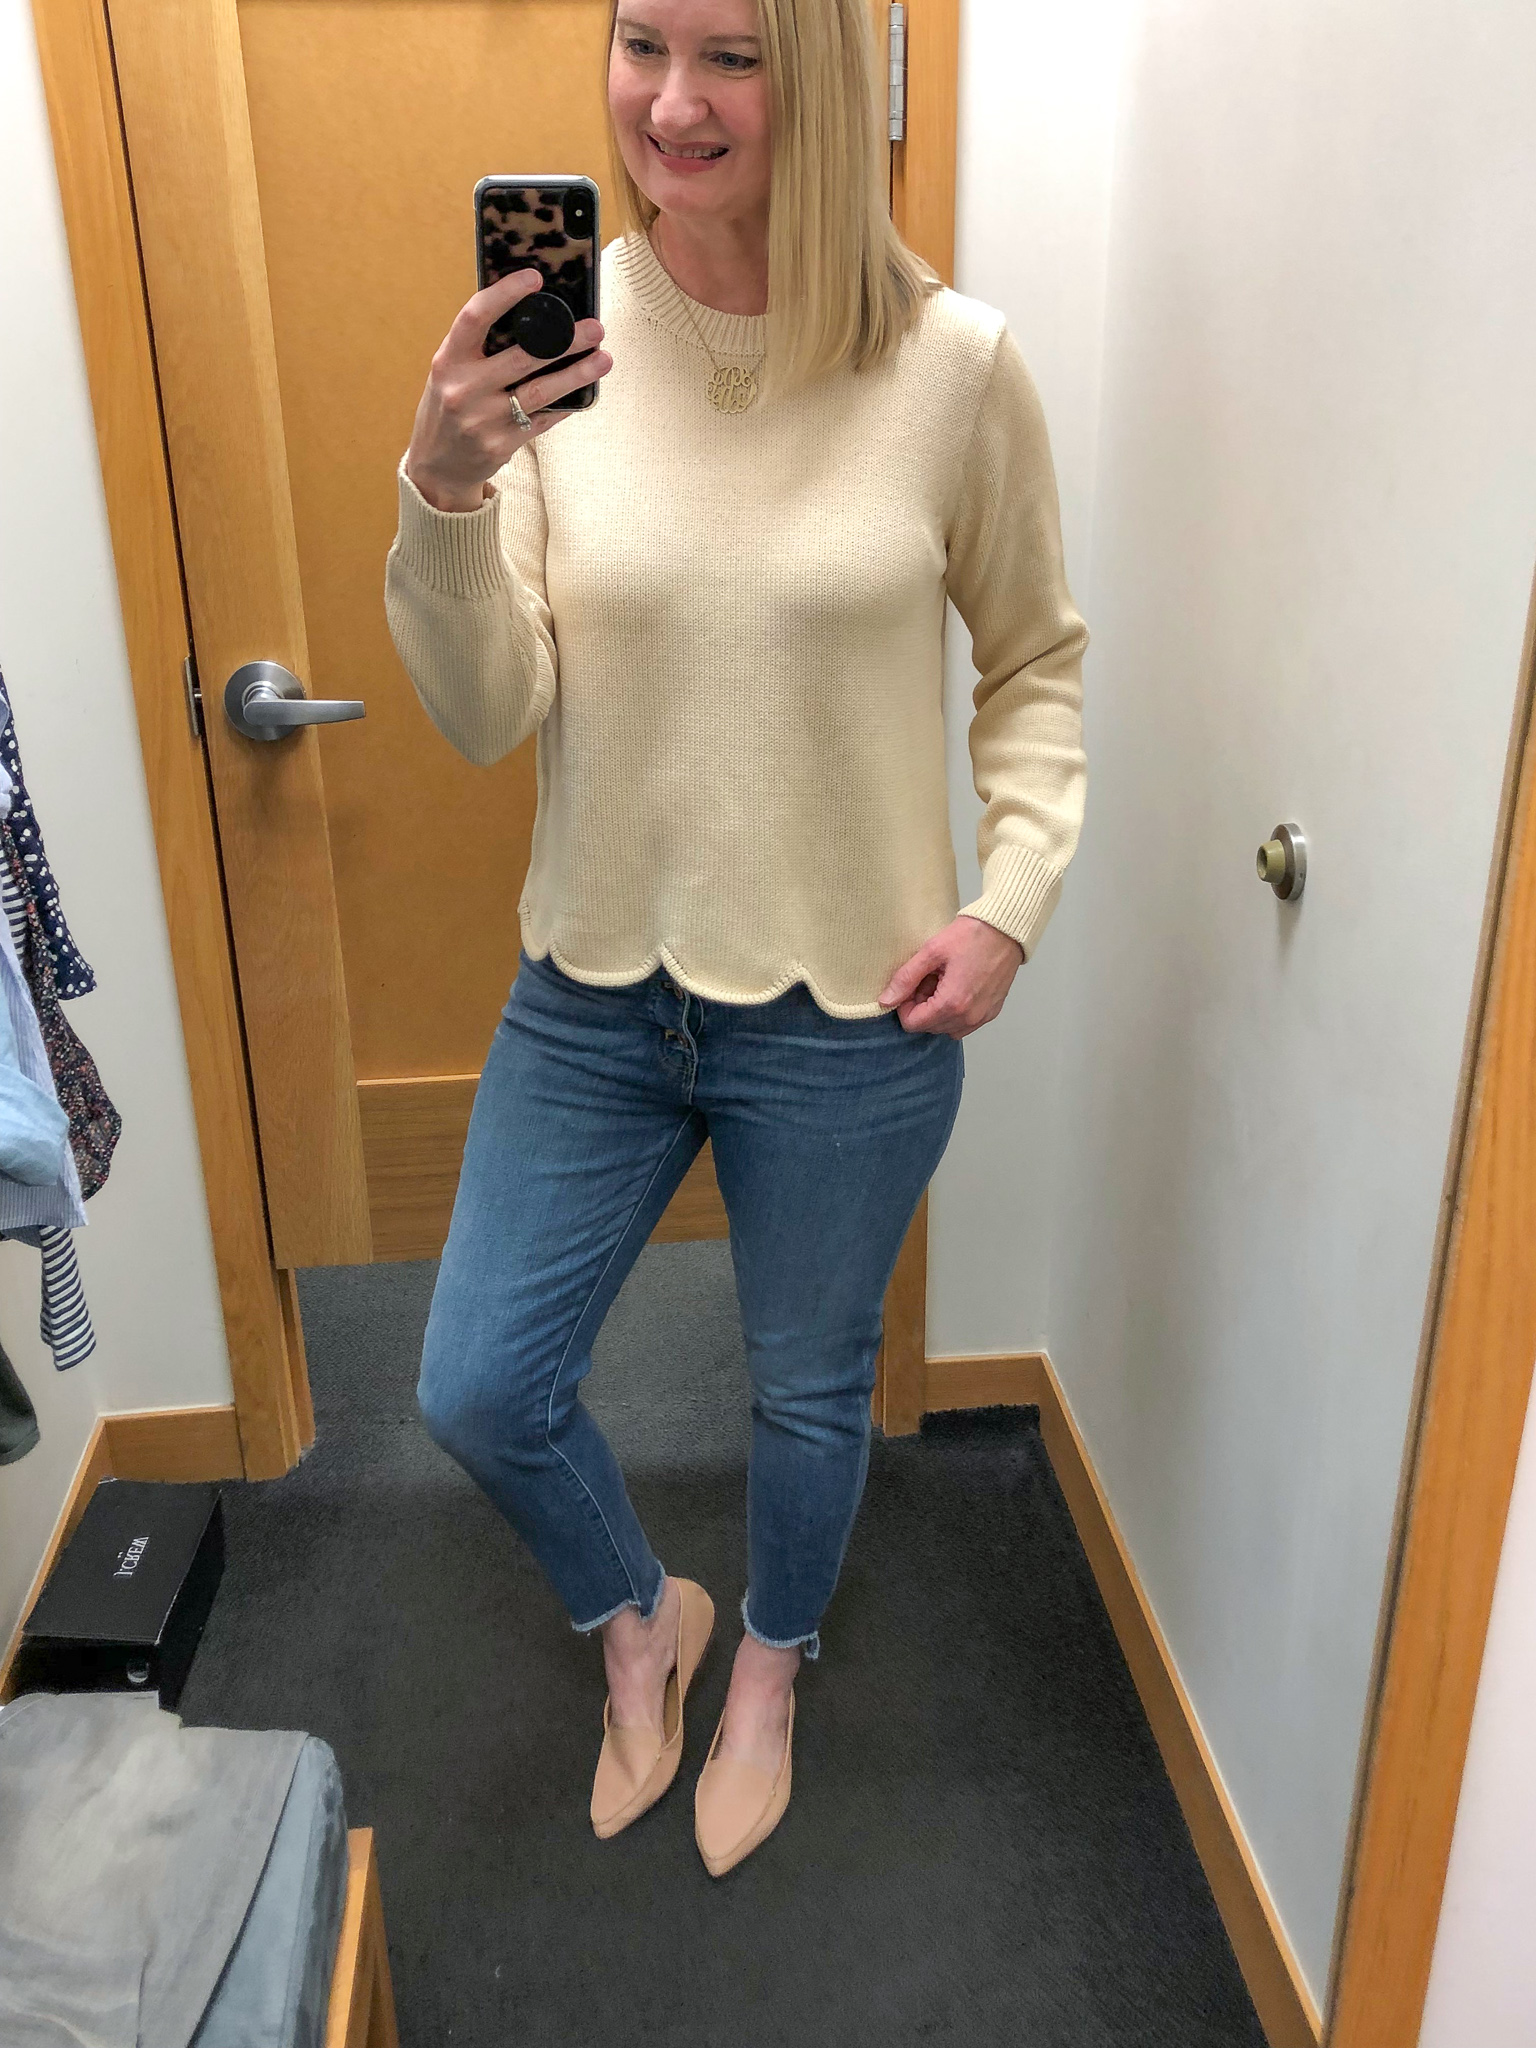 J Crew Factory Fitting Room Reviews March 2019 13